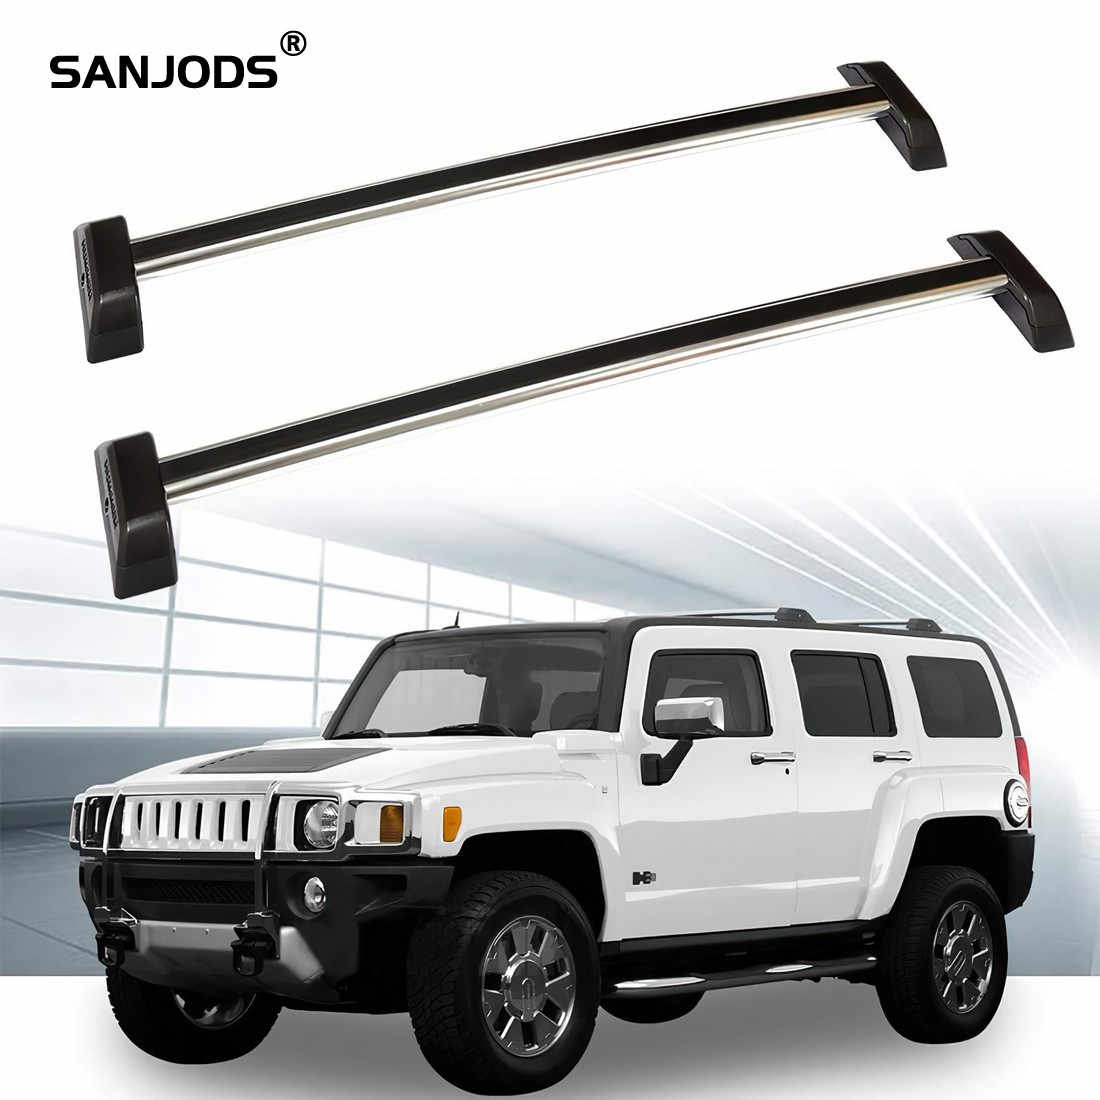 Sanjods Car Roof Rack Aluminum Roof Rack For 2006 2007 2008 2009 2010 2011 2012 2013 Hummer H3 Luggage Carrier Top Cross Bars Roof Racks Boxes Aliexpress